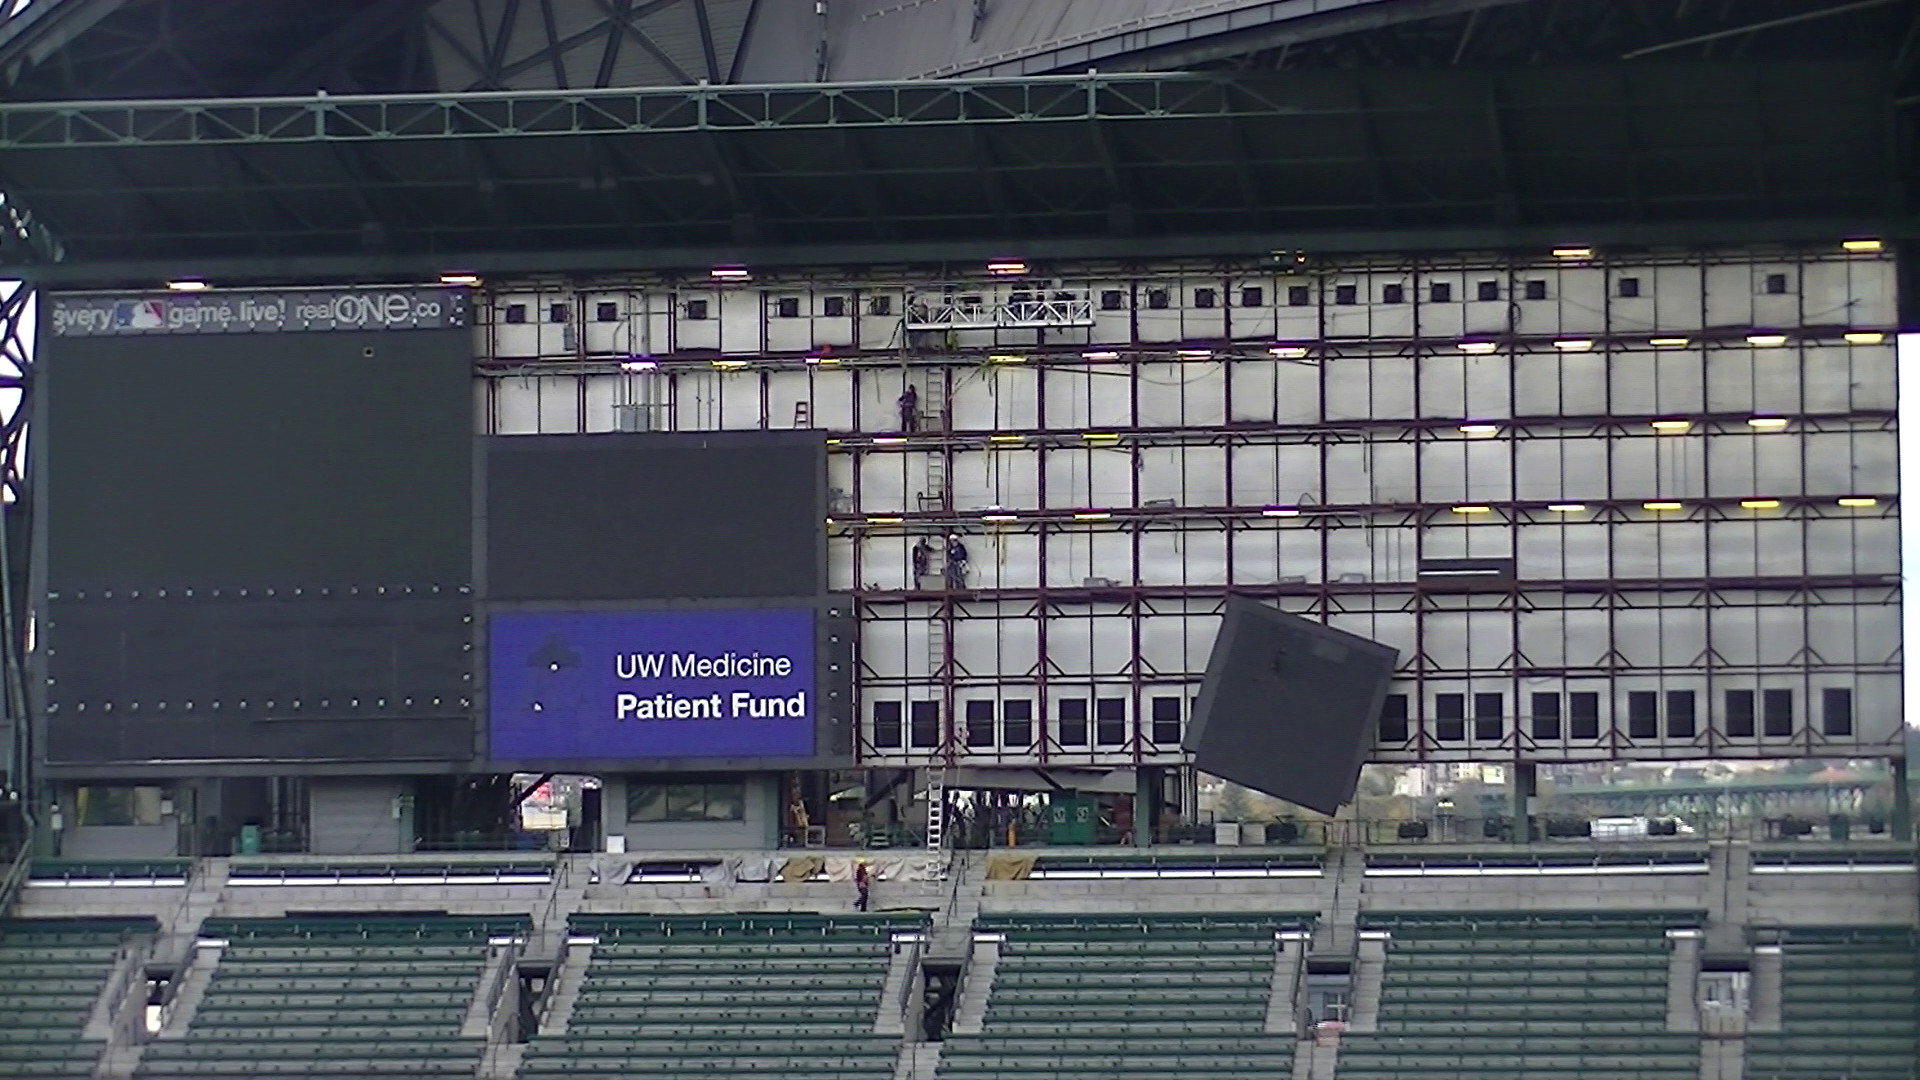 Safeco Field Scoreboard Safeco Field Scoreboard is